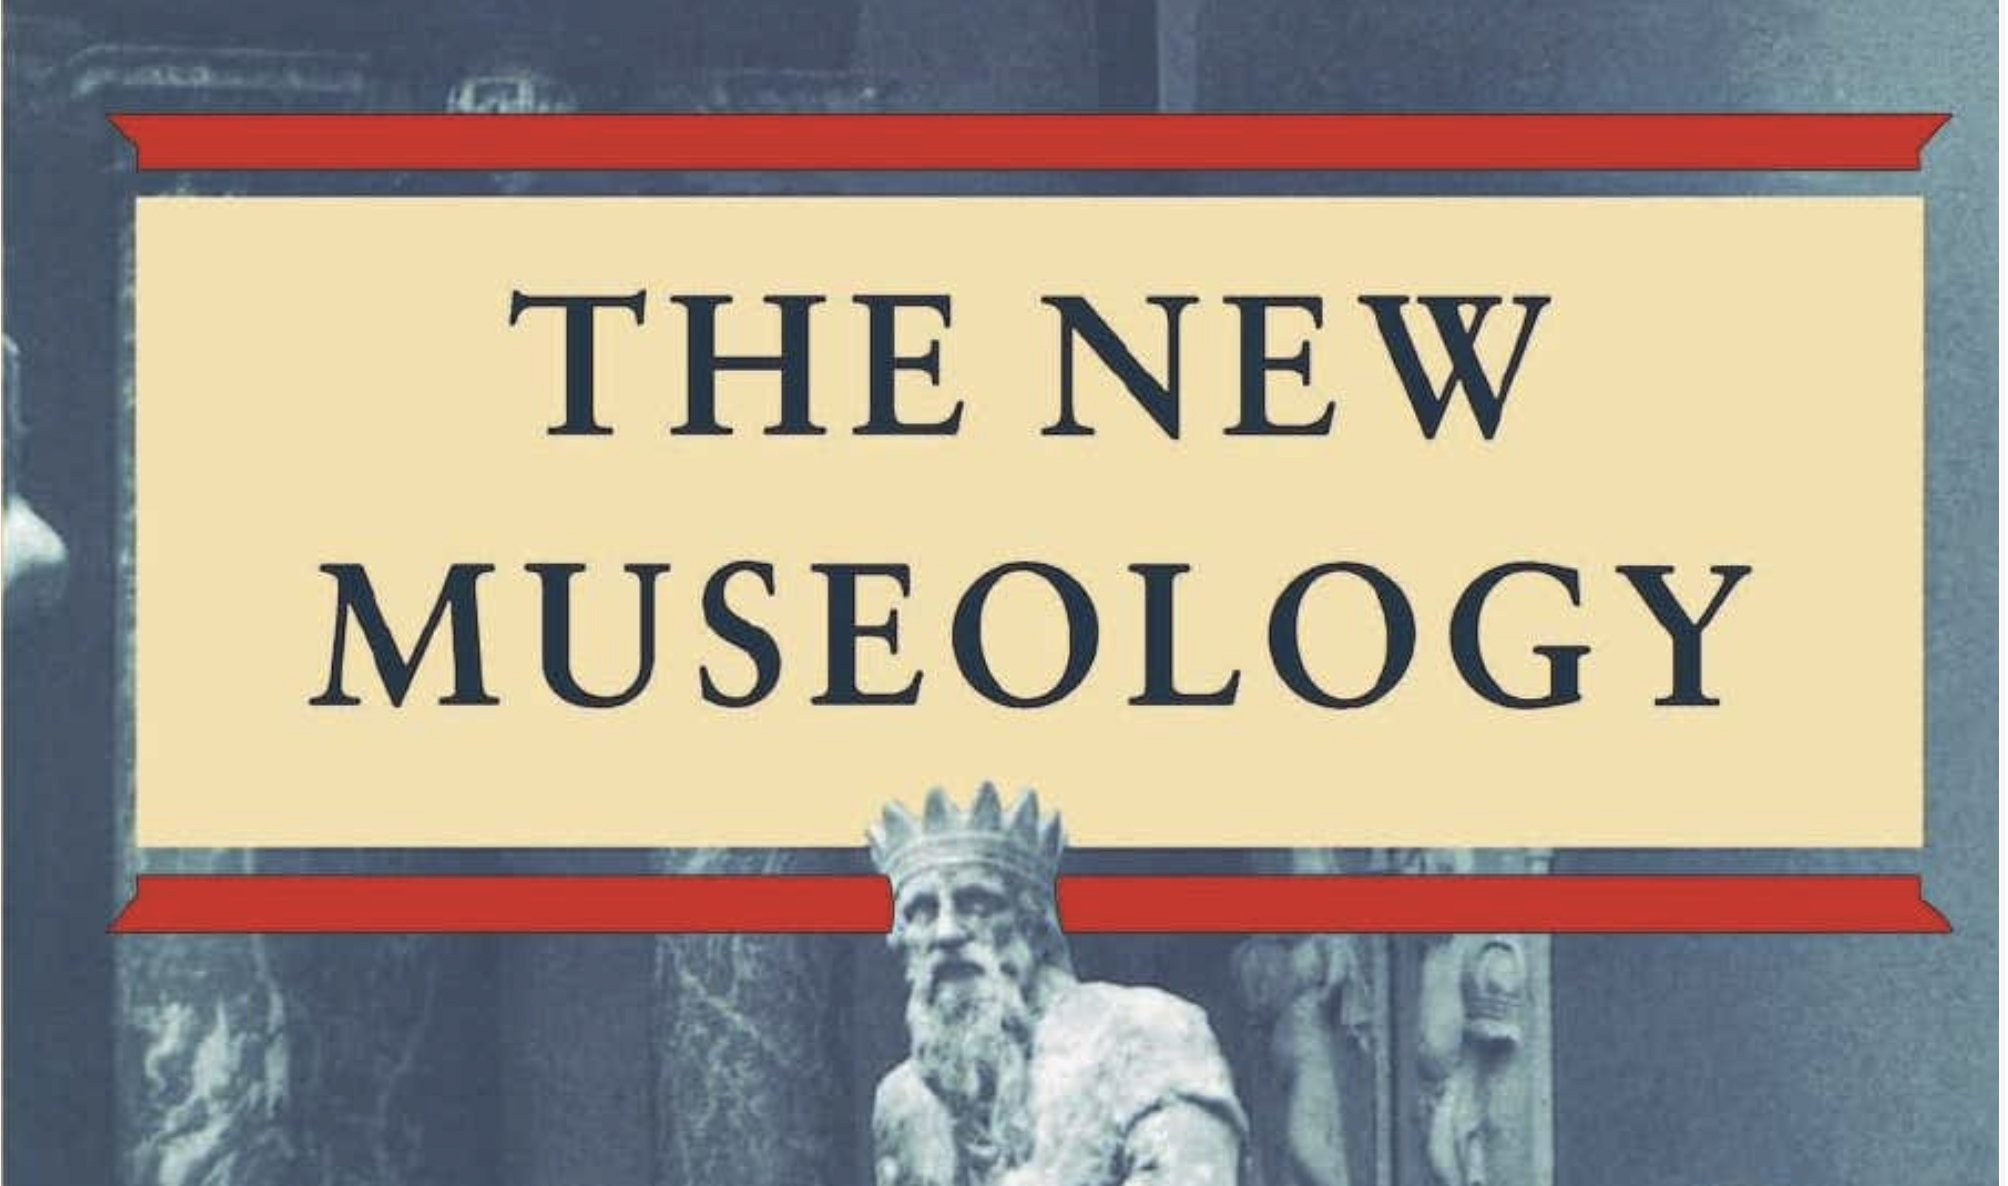 The New Museology by Peter Vergo